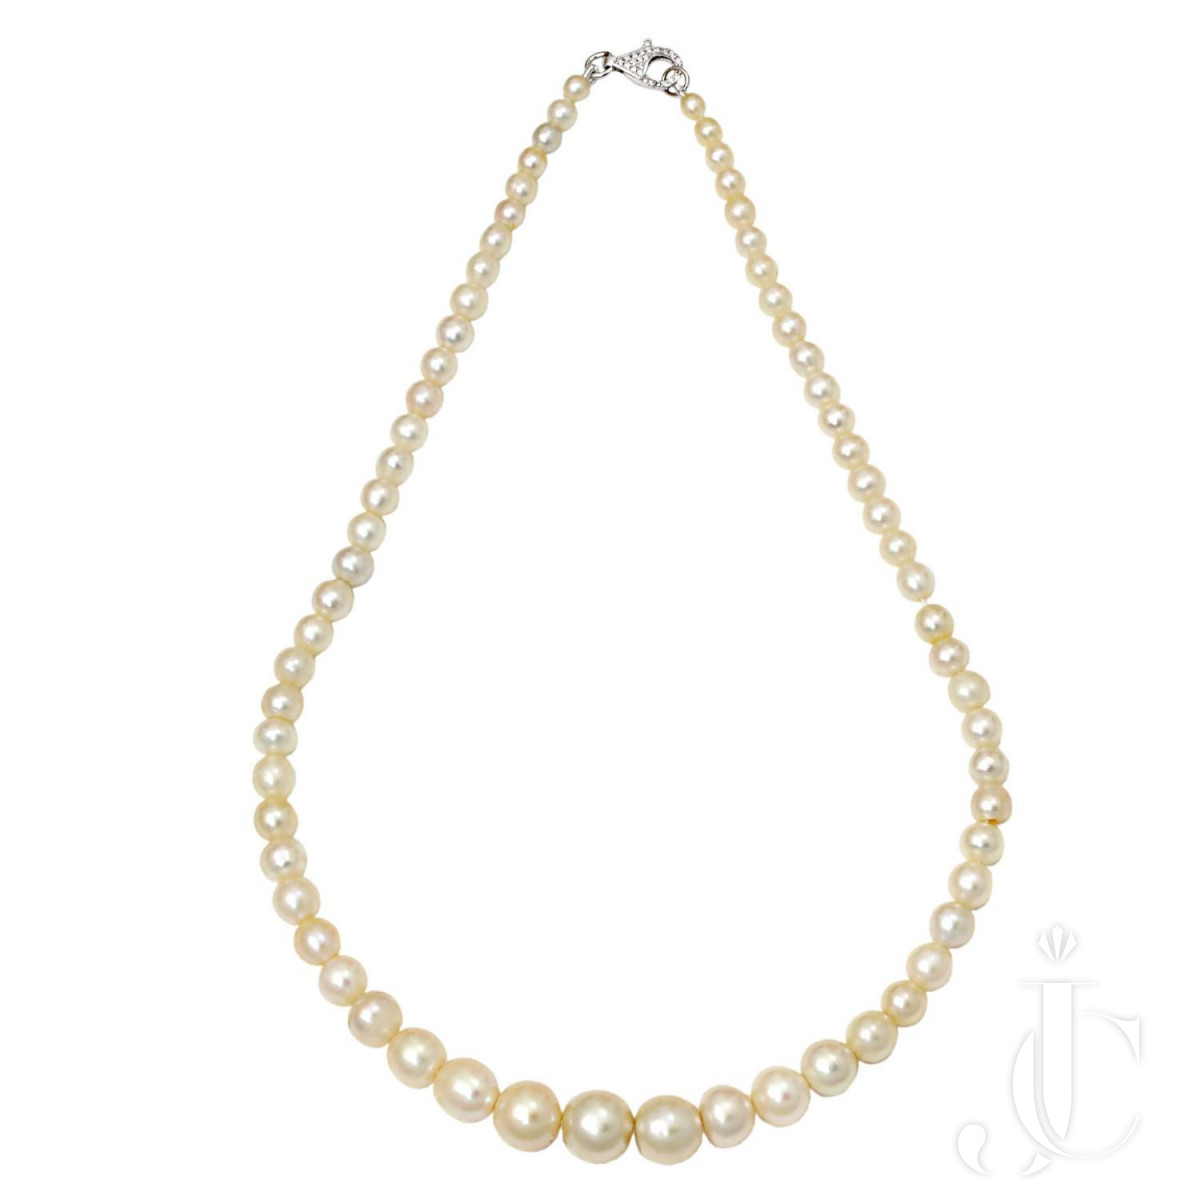 Natural Saltwater Pearl Necklace 3.38 to 9.64 mm- 143.35 Chow